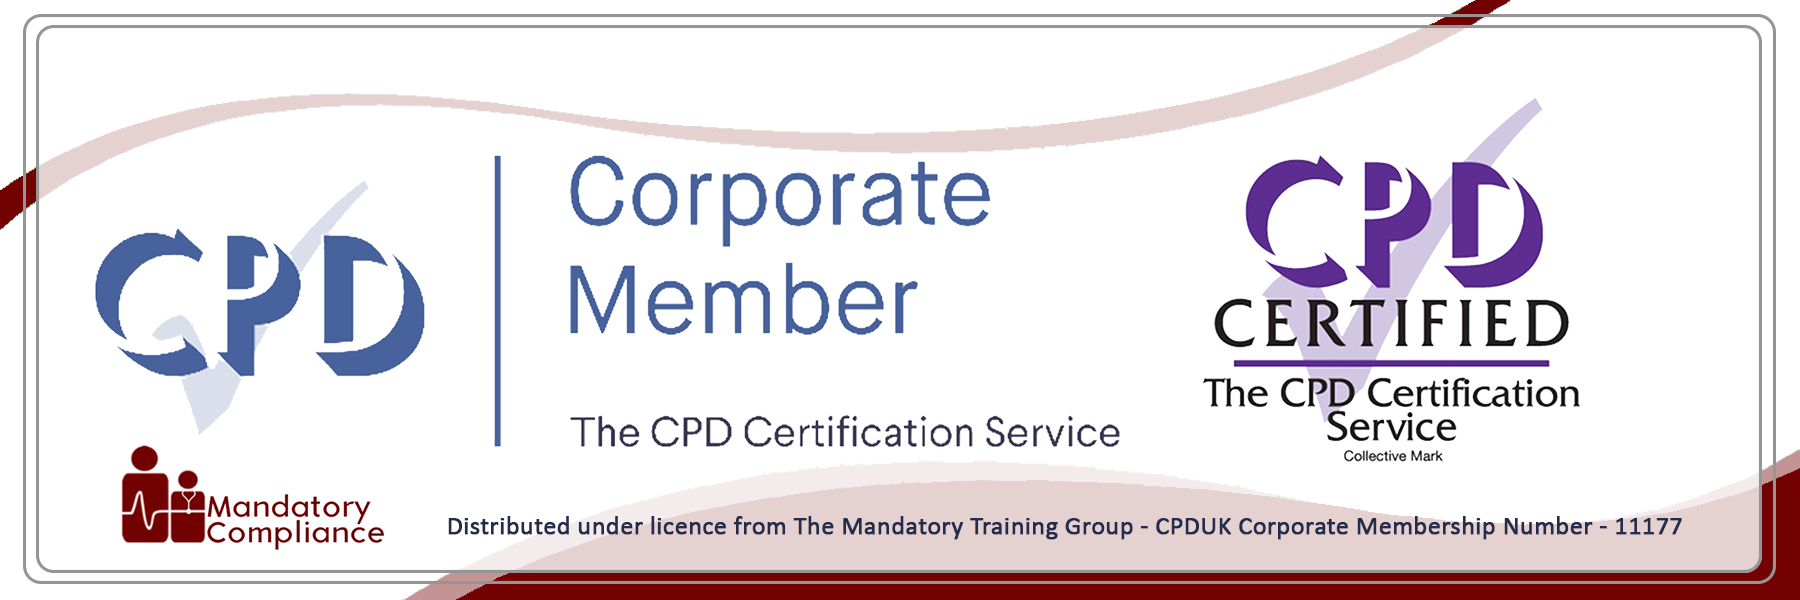 Safe Handling and Administration of Medical Gases - Online Training Course - CPD Accredited - Mandatory Compliance UK -